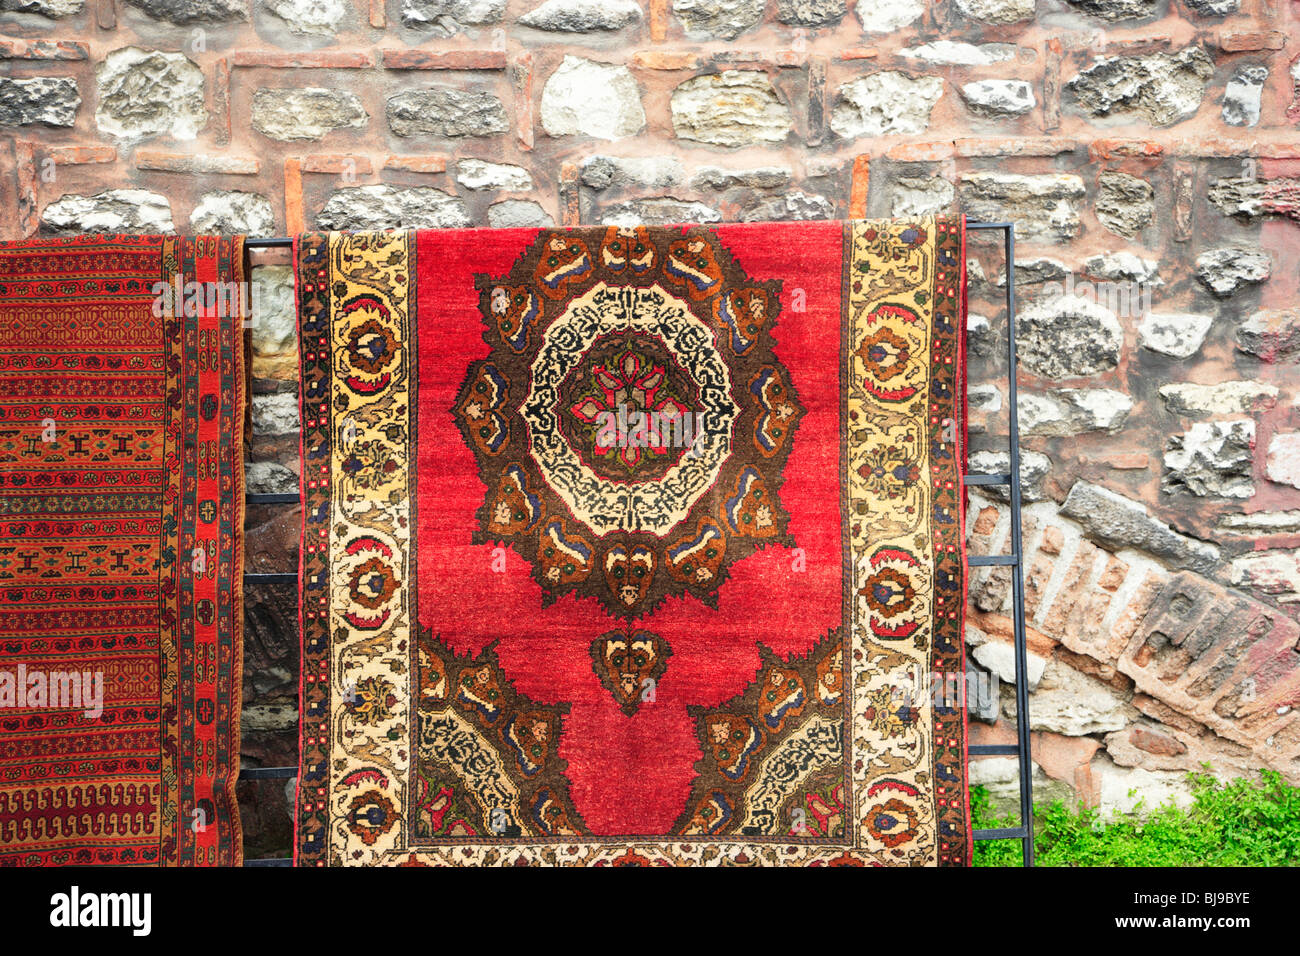 Turkish Carpets and Rugs for sale, Sultanahmet District, Istanbul, Turkey - Stock Image